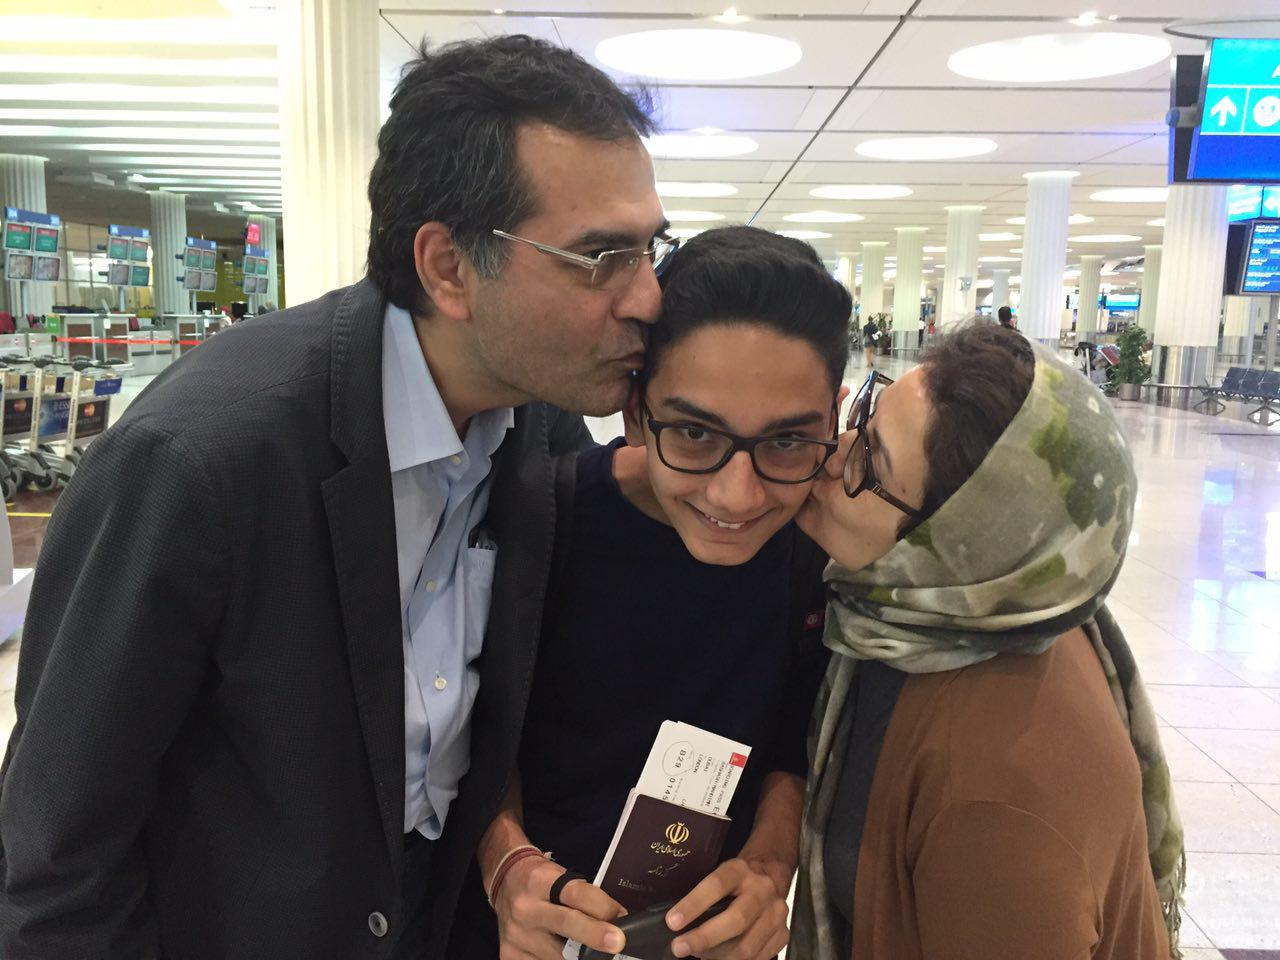 Dubai Airport Terminal 3 - 03-April-2016 Last Kisses